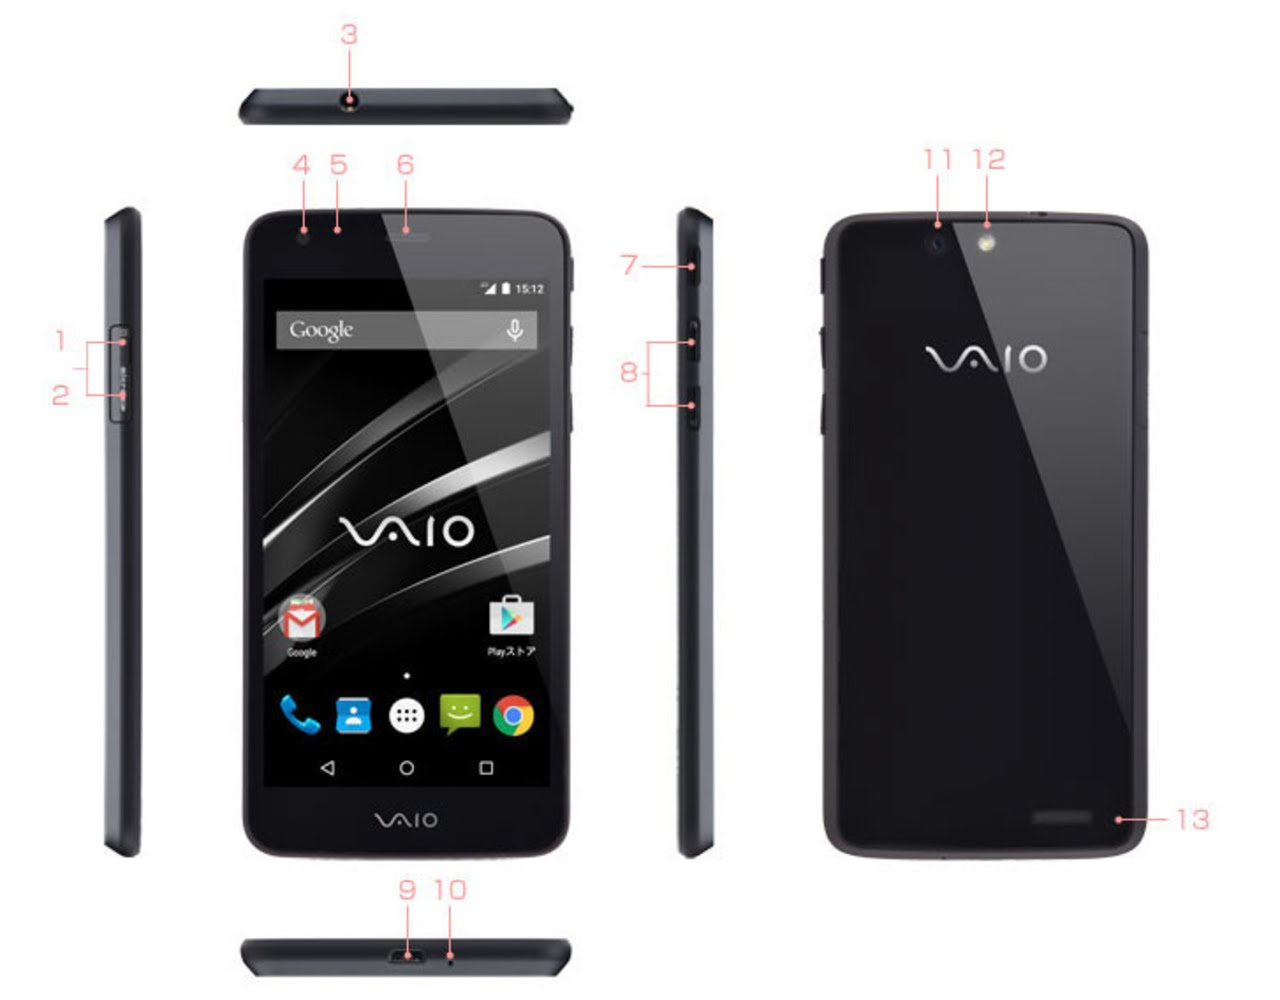 vaio 39 s first ever smartphone va 10j specifications and. Black Bedroom Furniture Sets. Home Design Ideas